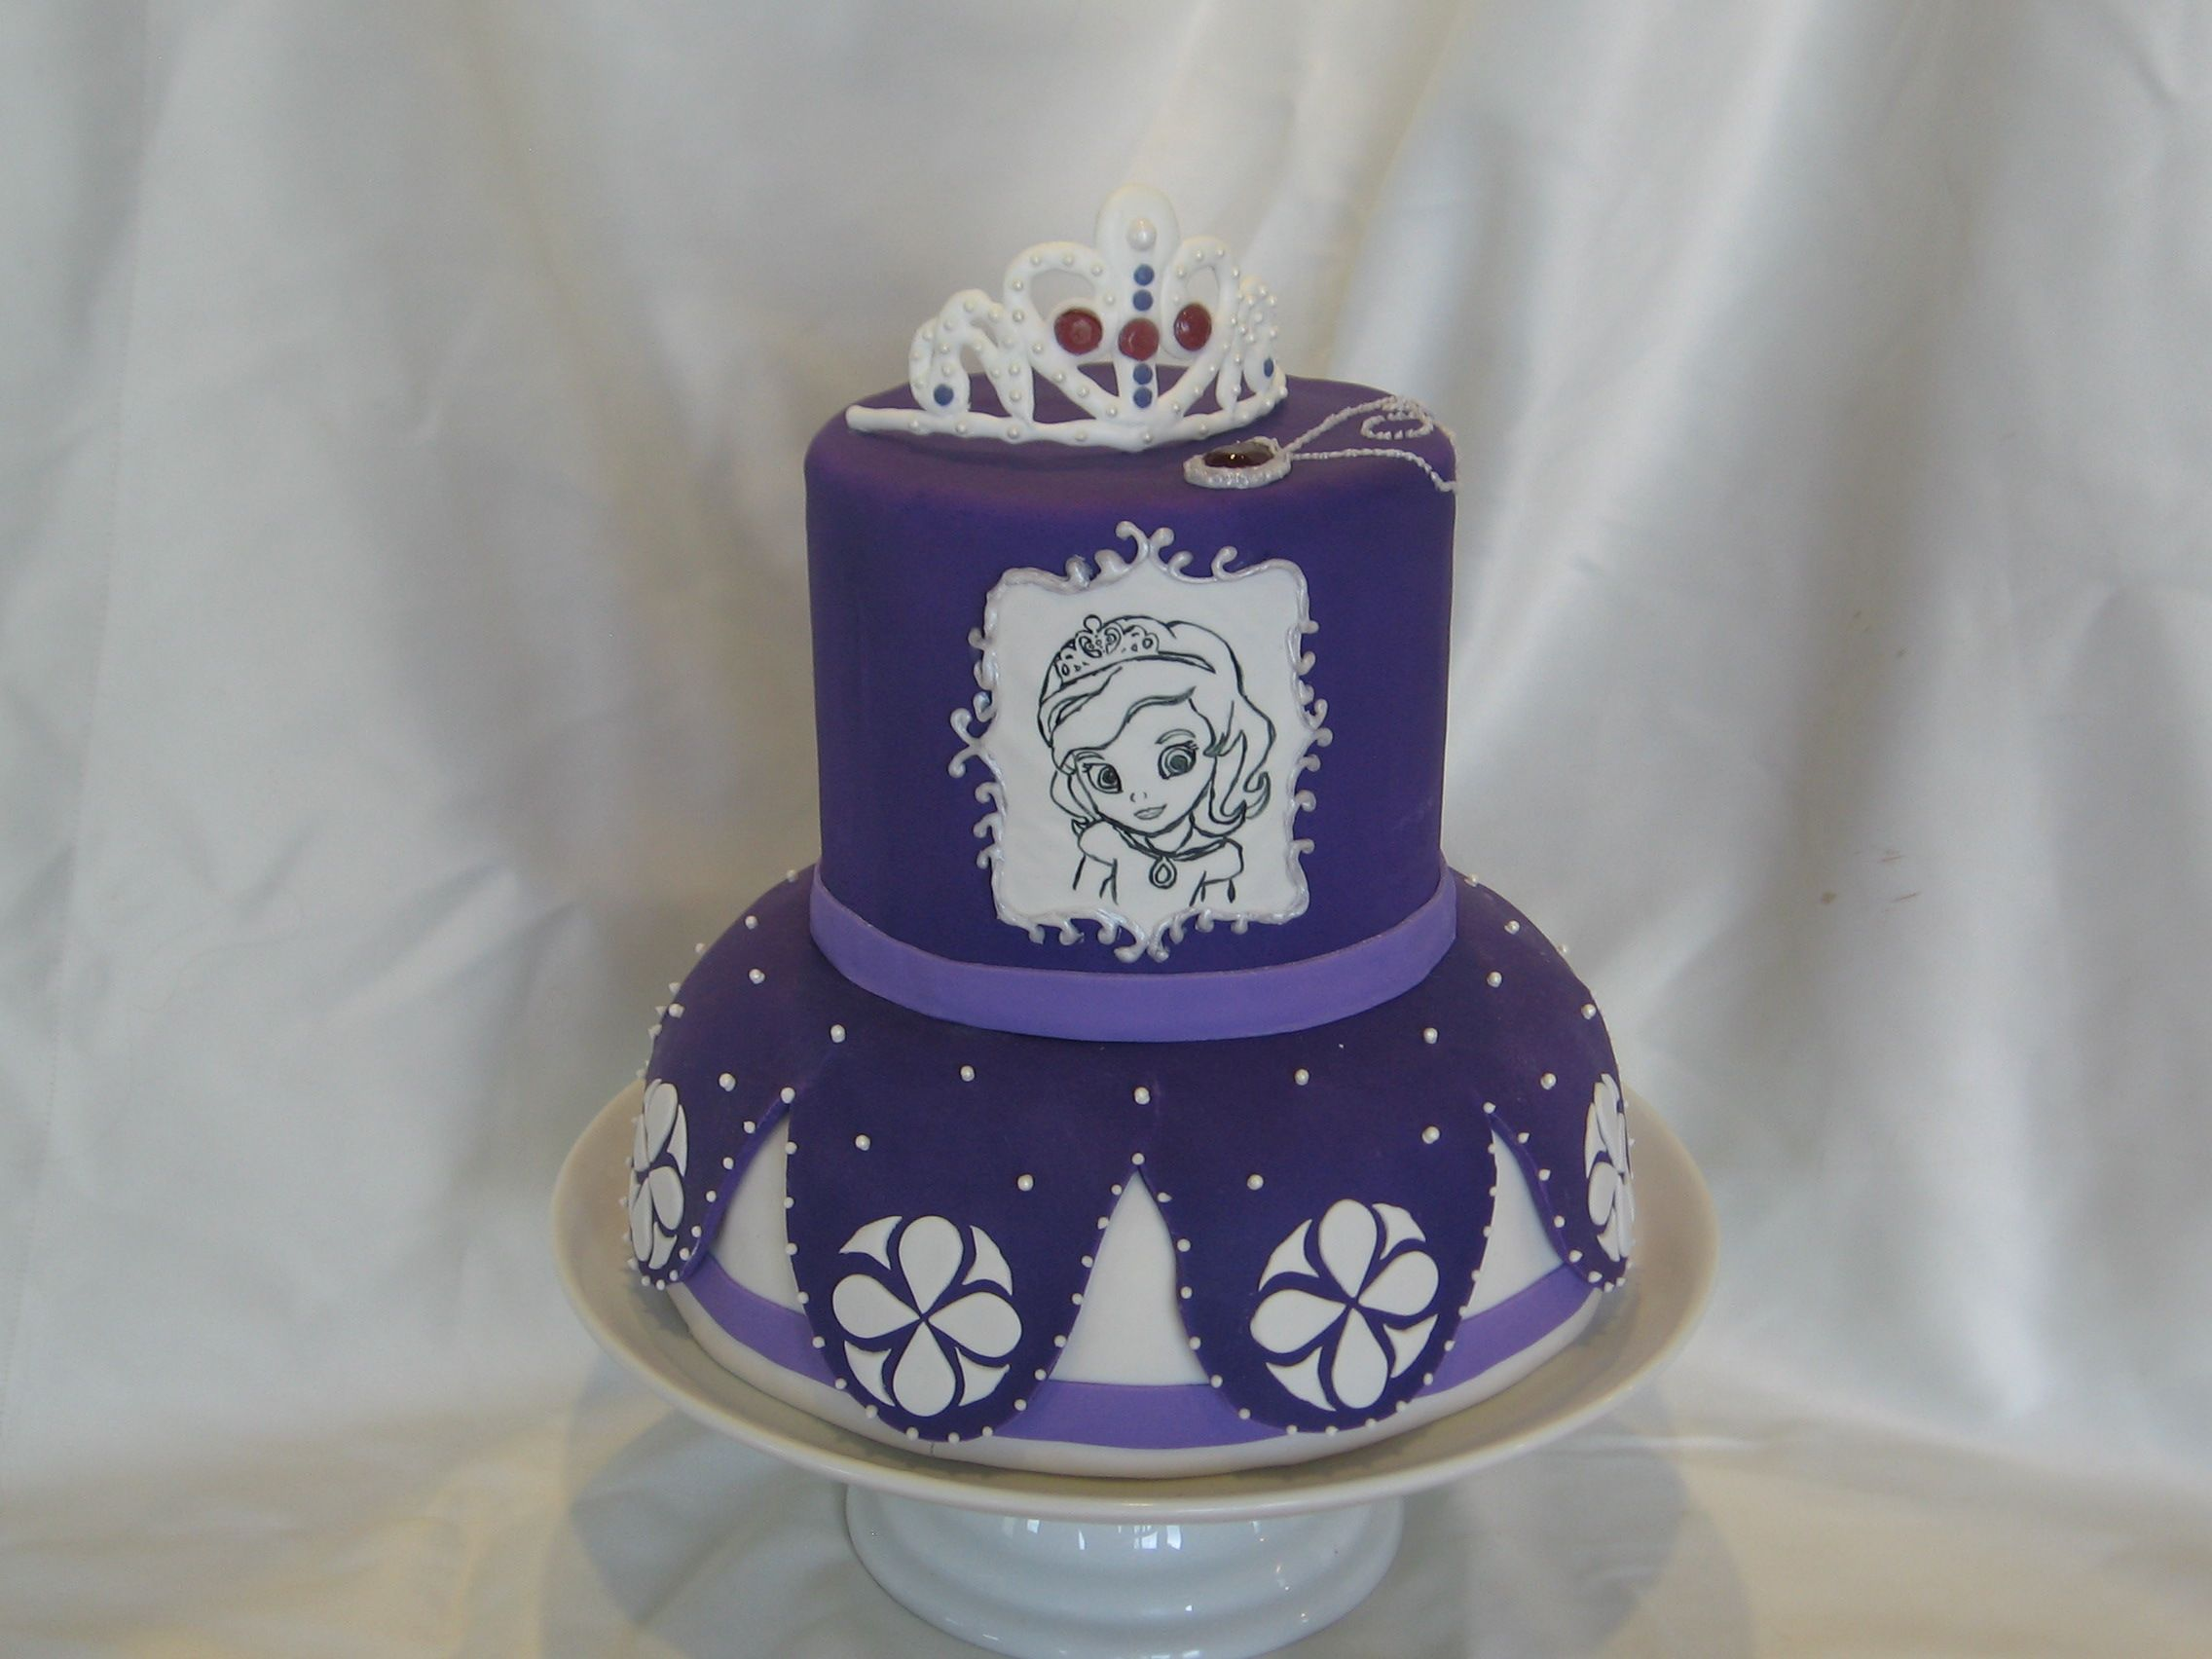 Sofia the First Cake Six inch round and bundt cakes Royal icing